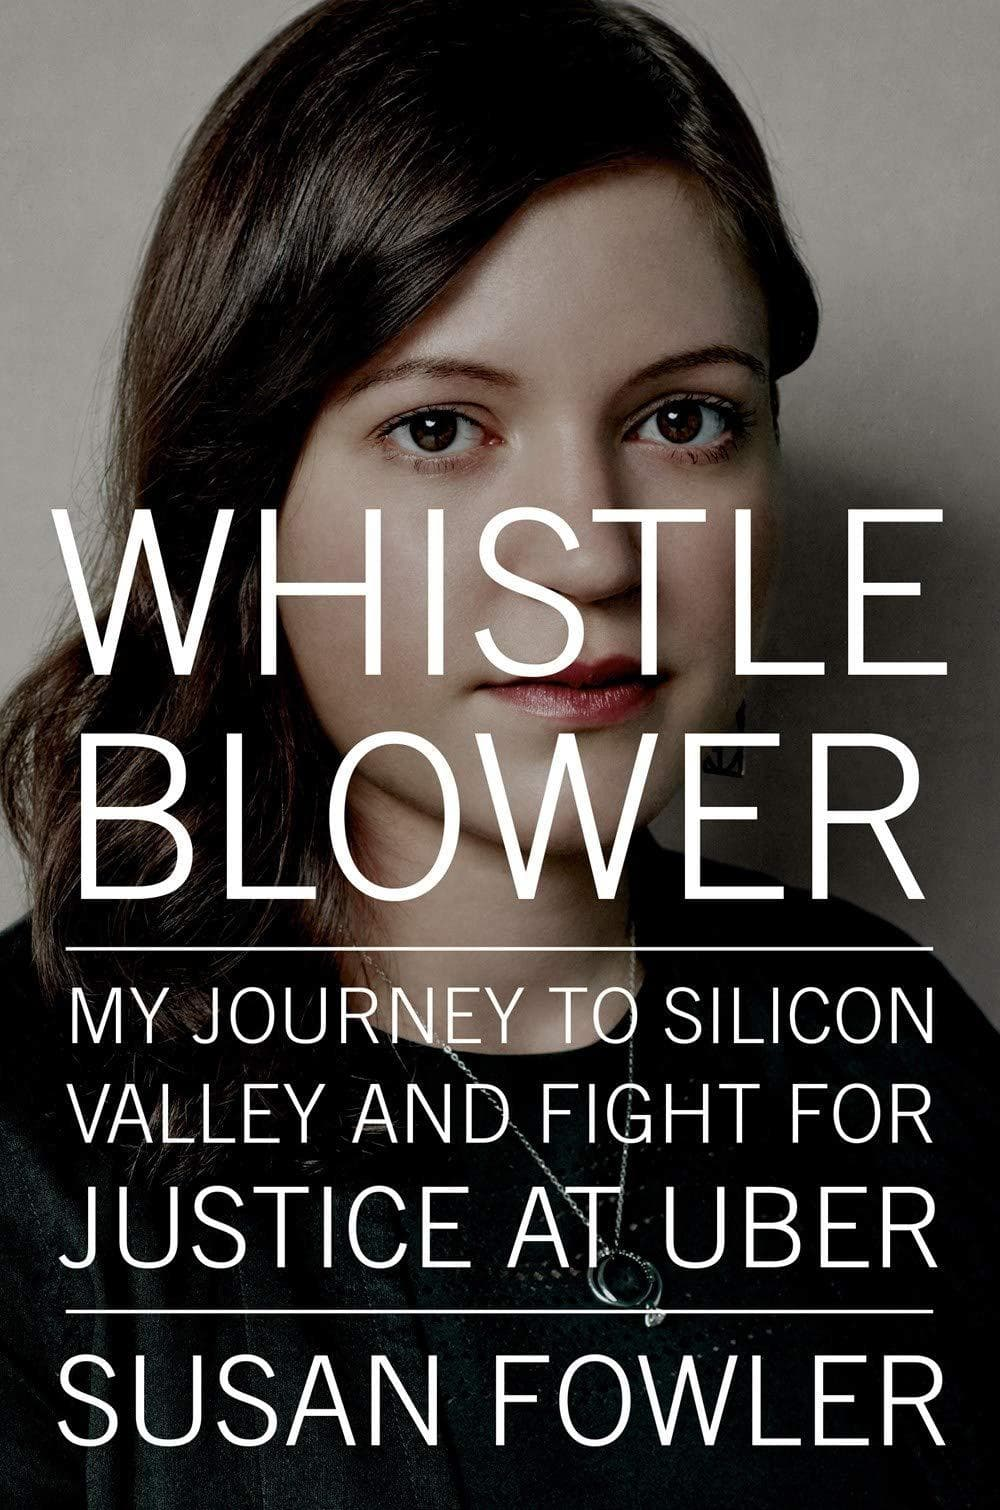 whistle blower book